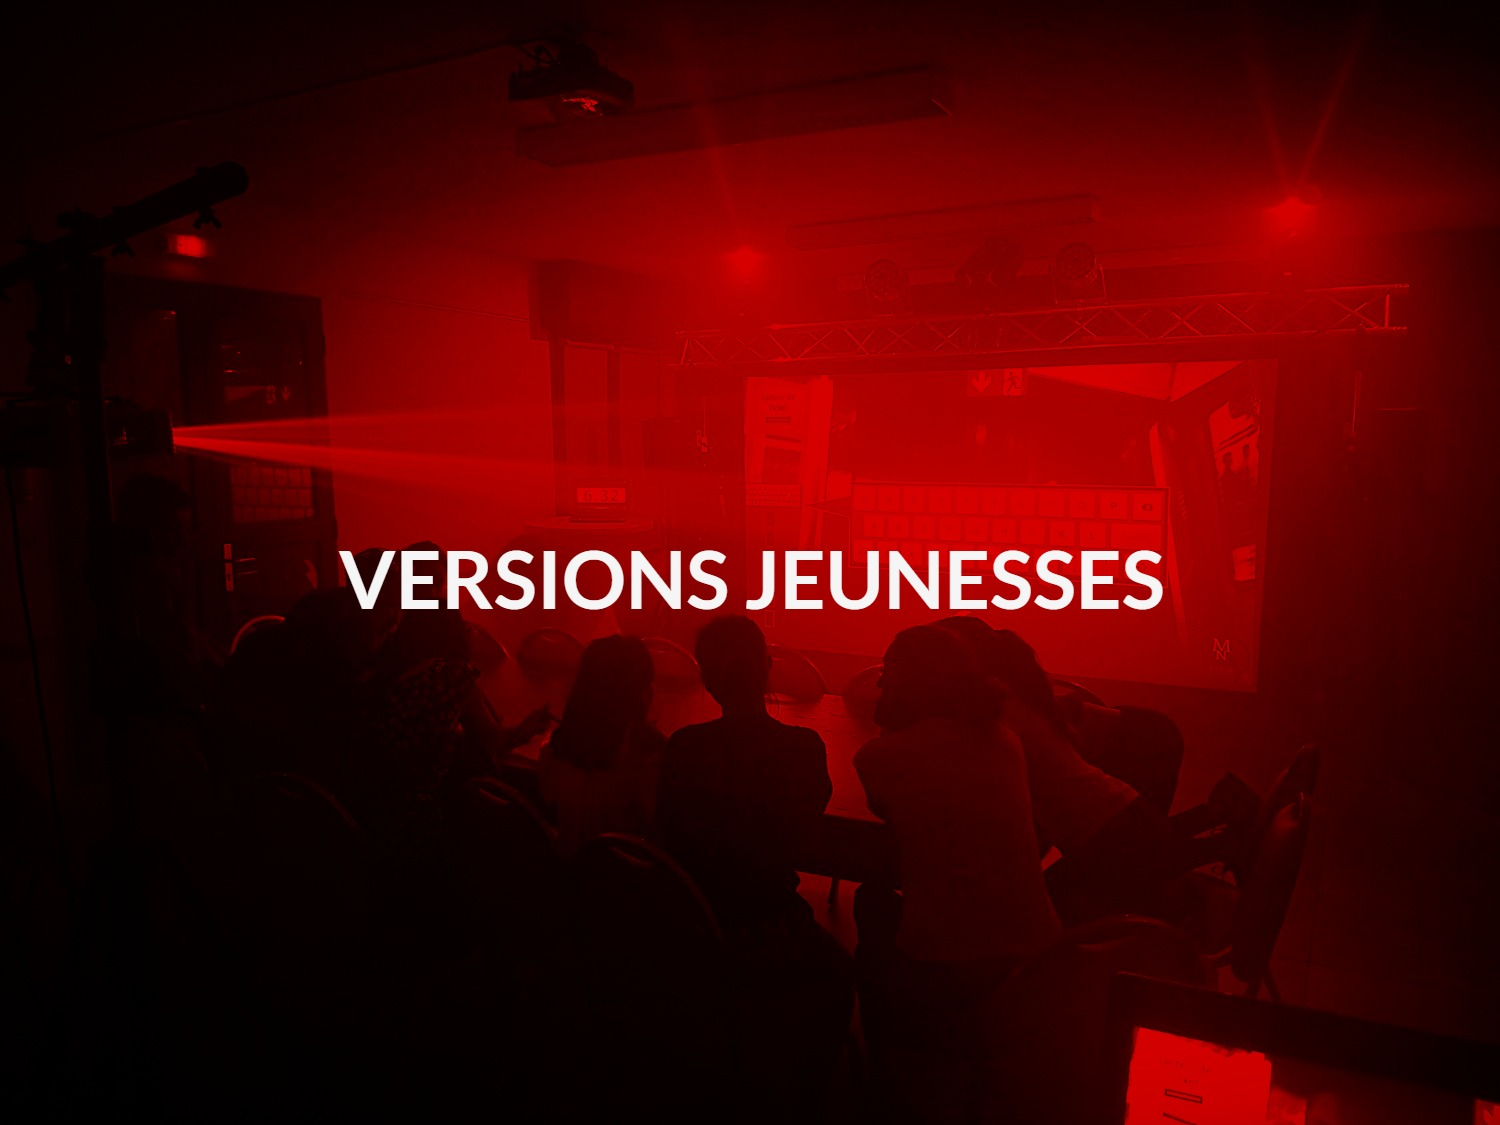 Version jeunesses